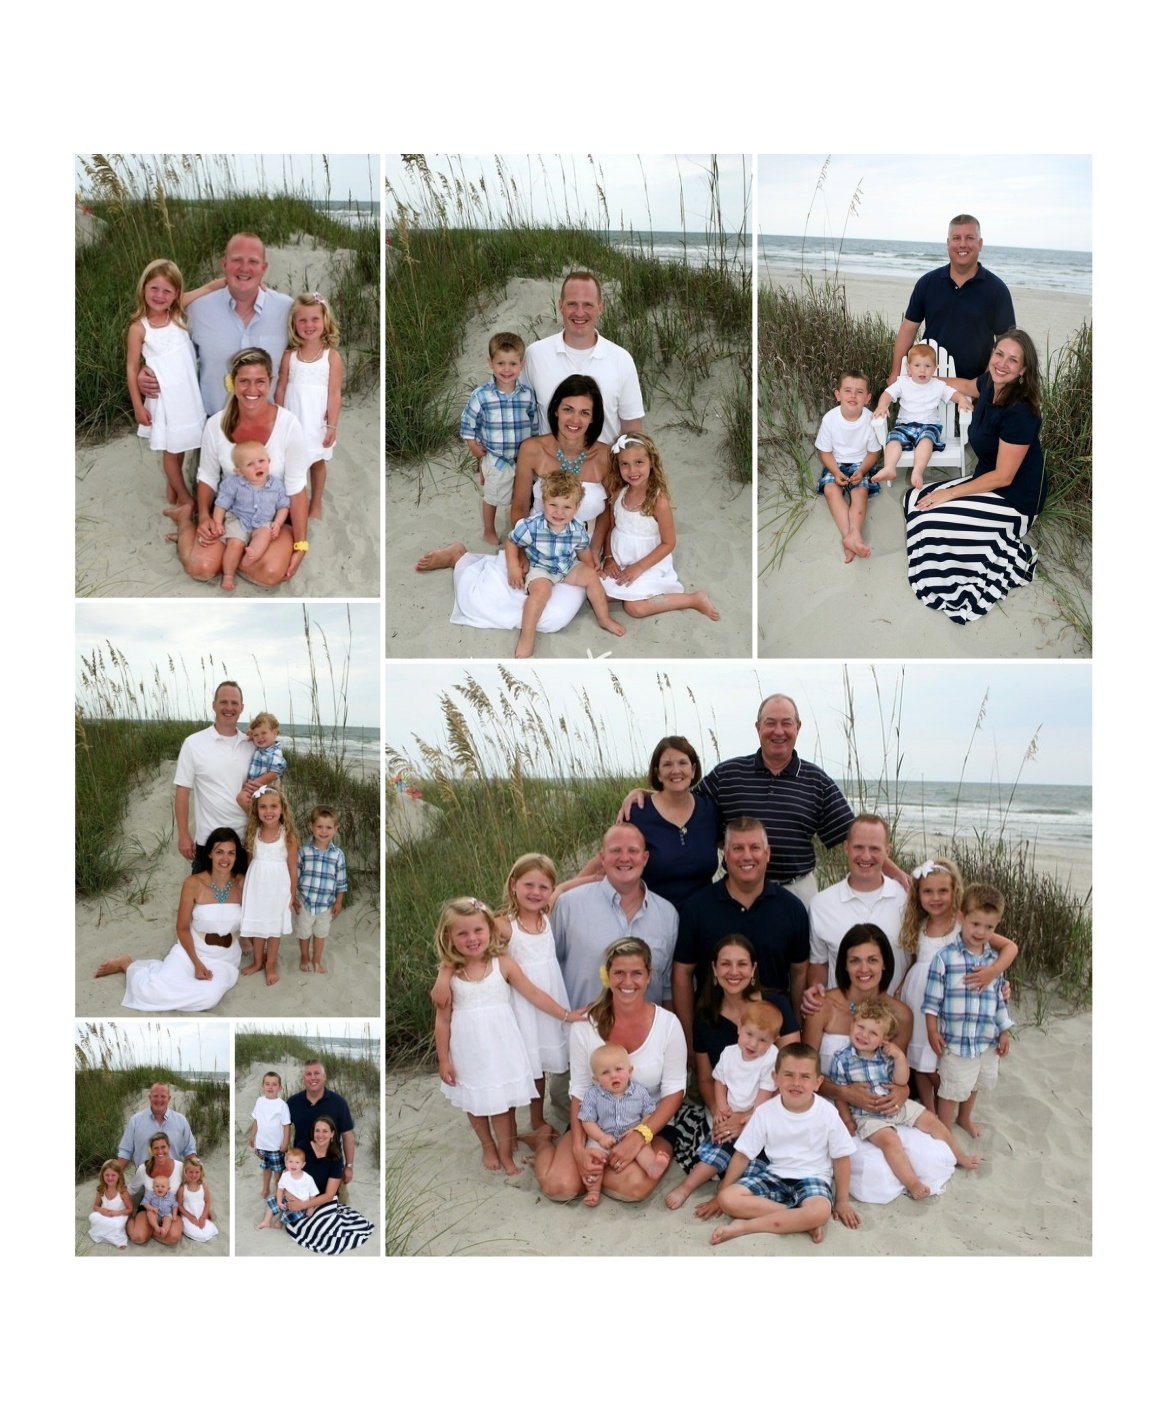 Family Pictures In The Beach: Family Beach Portrait Attire Ideas